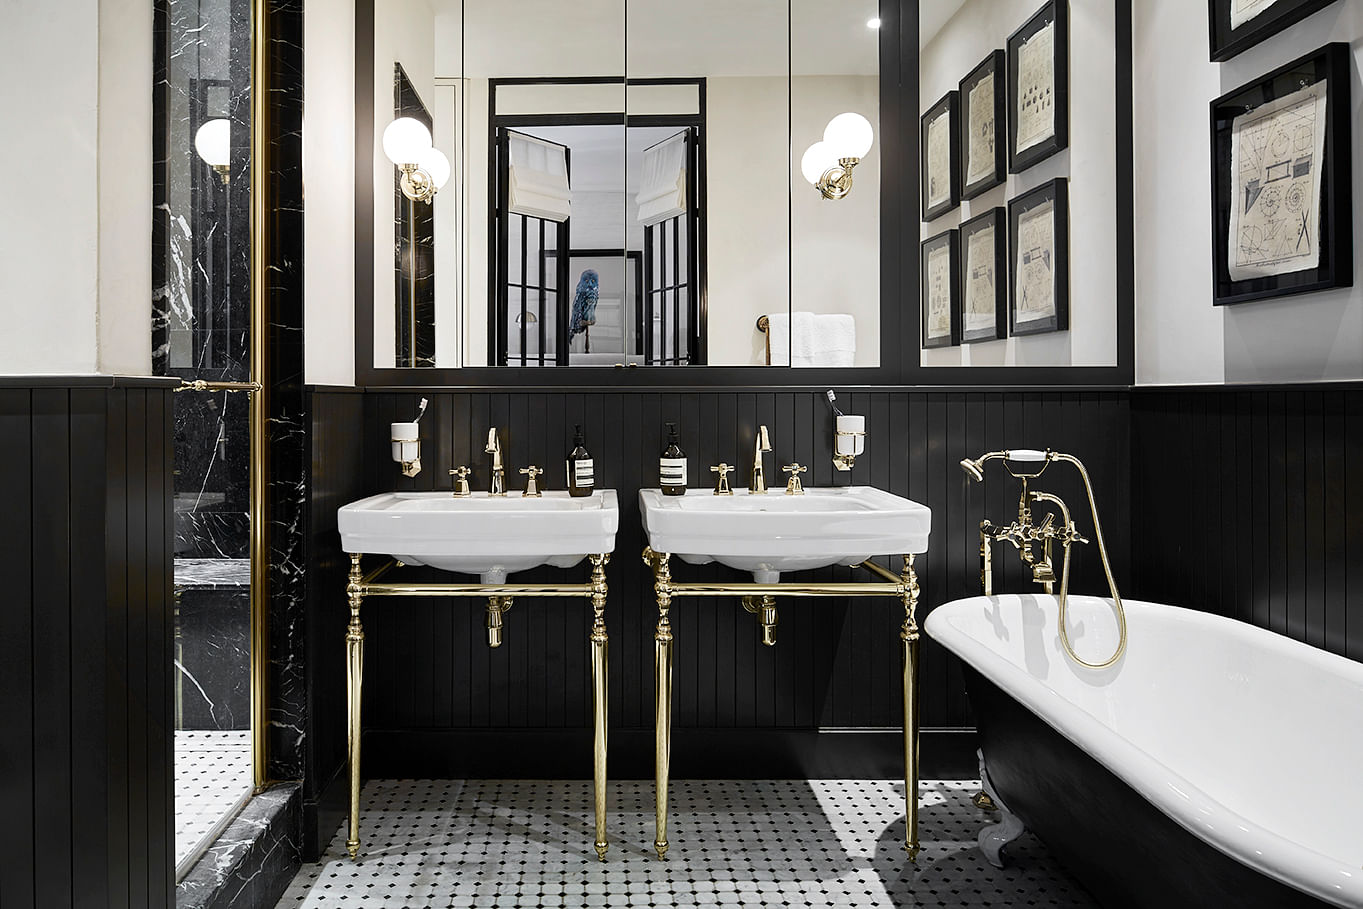 Beau ... We Love The Detailing On The Gold Fixtures, Octagonal Tiled Floor, And  Ornate Bathtub Legs. We Also Appreciate The Clean Lines From The High Black  ...